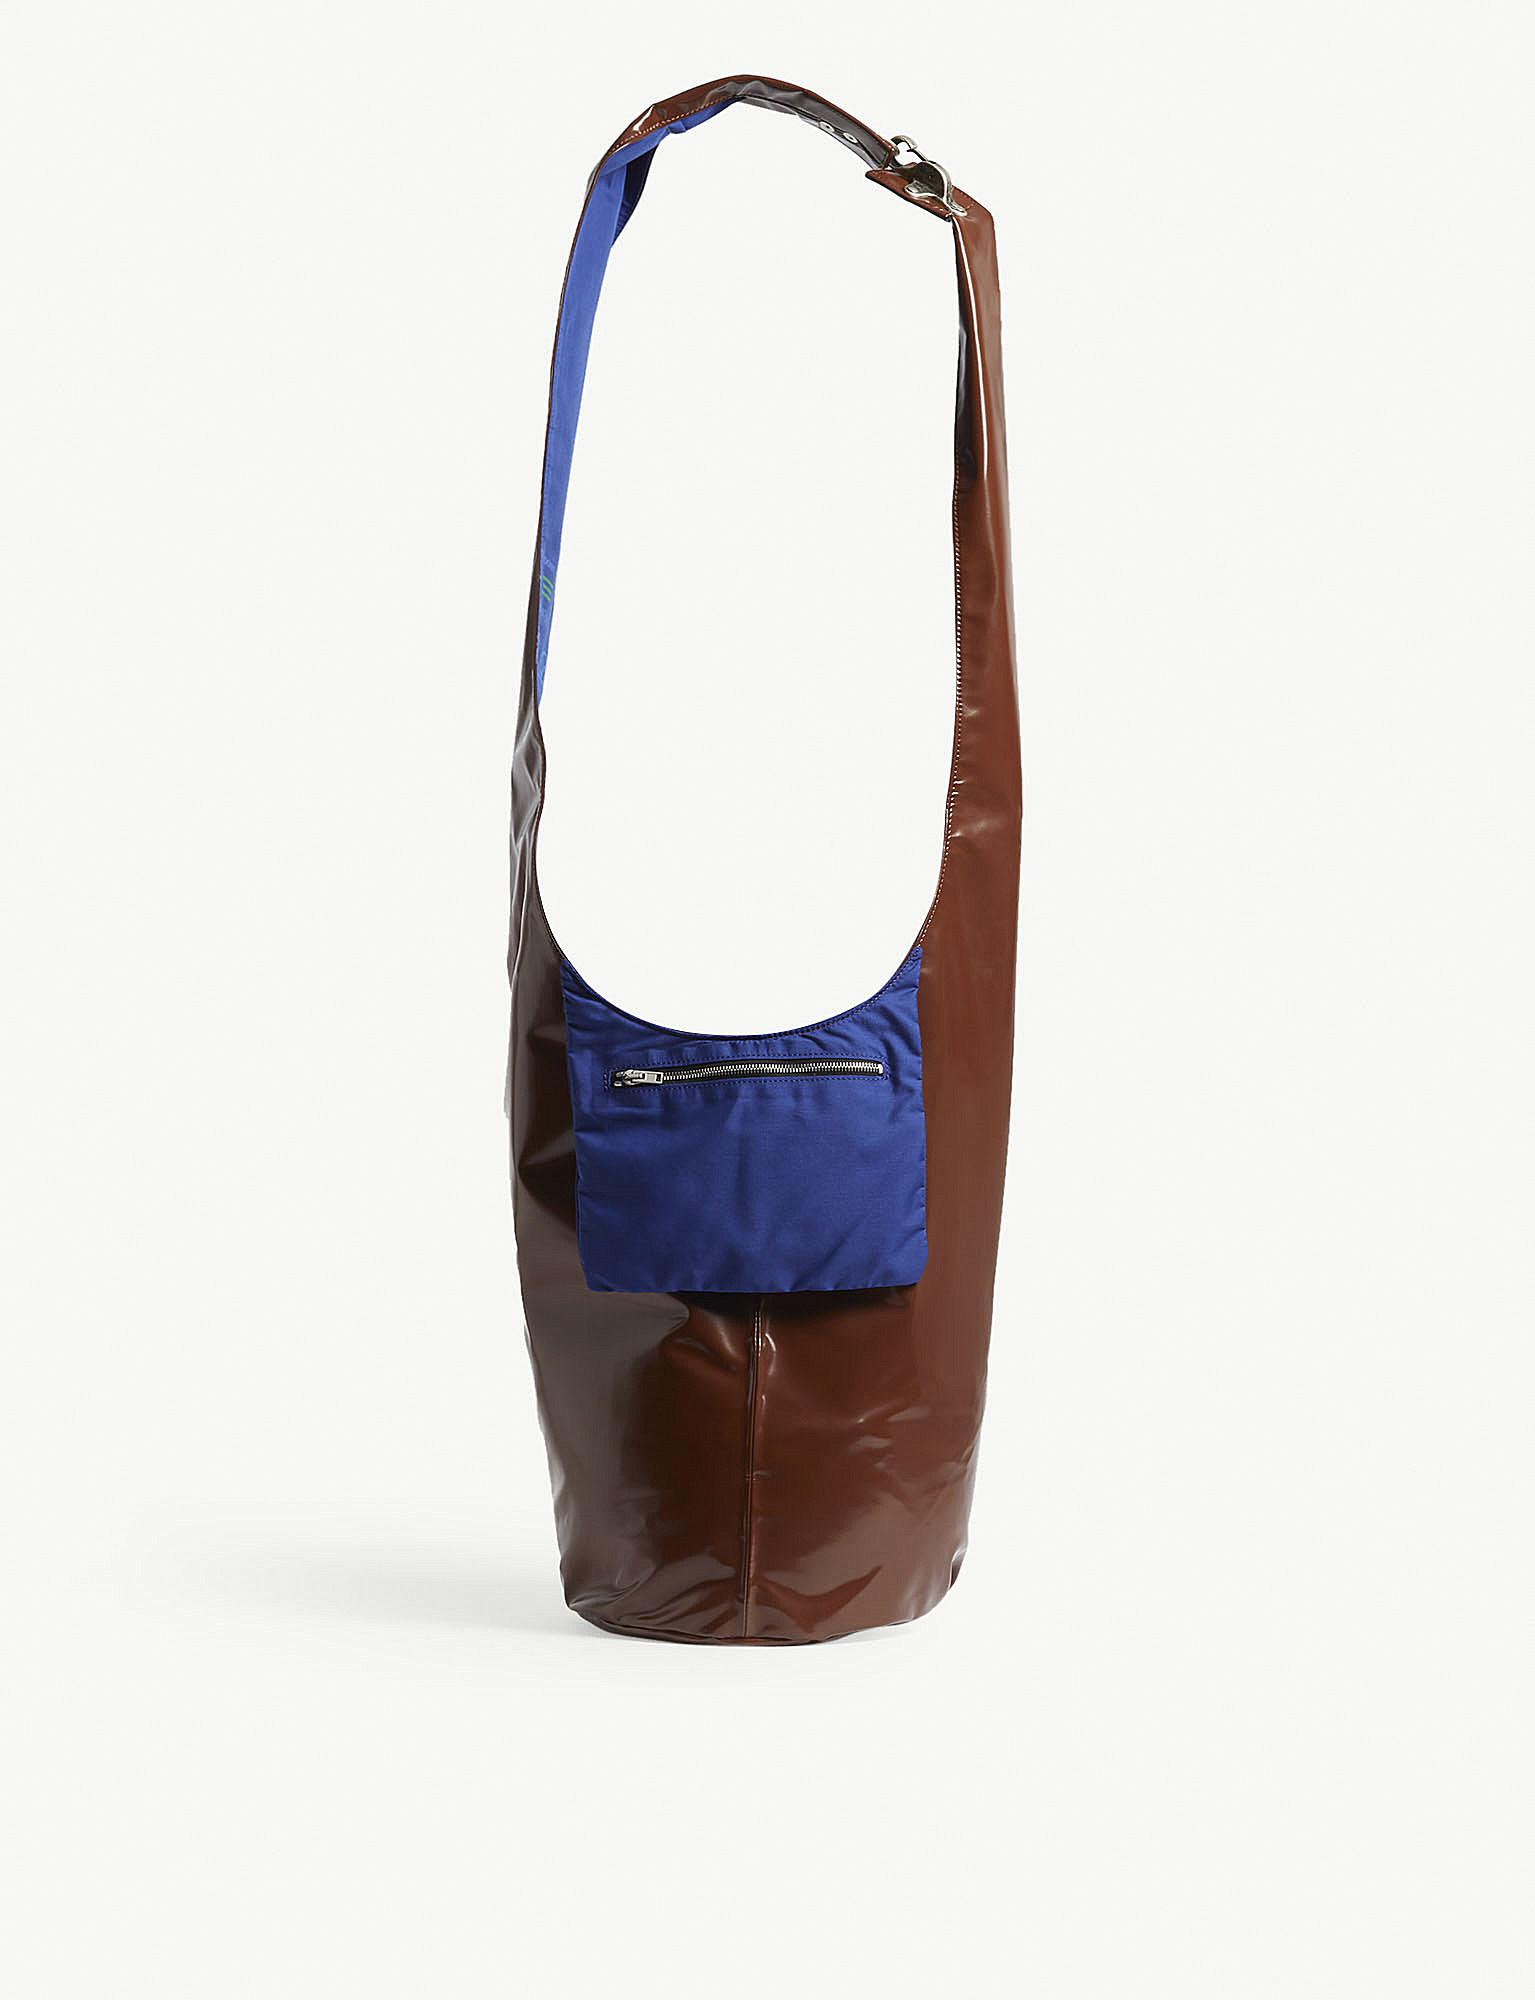 b961a953ff95 Lyst - Raf Simons Ladies Blue Twisted Patent Shoulder Bag in Blue